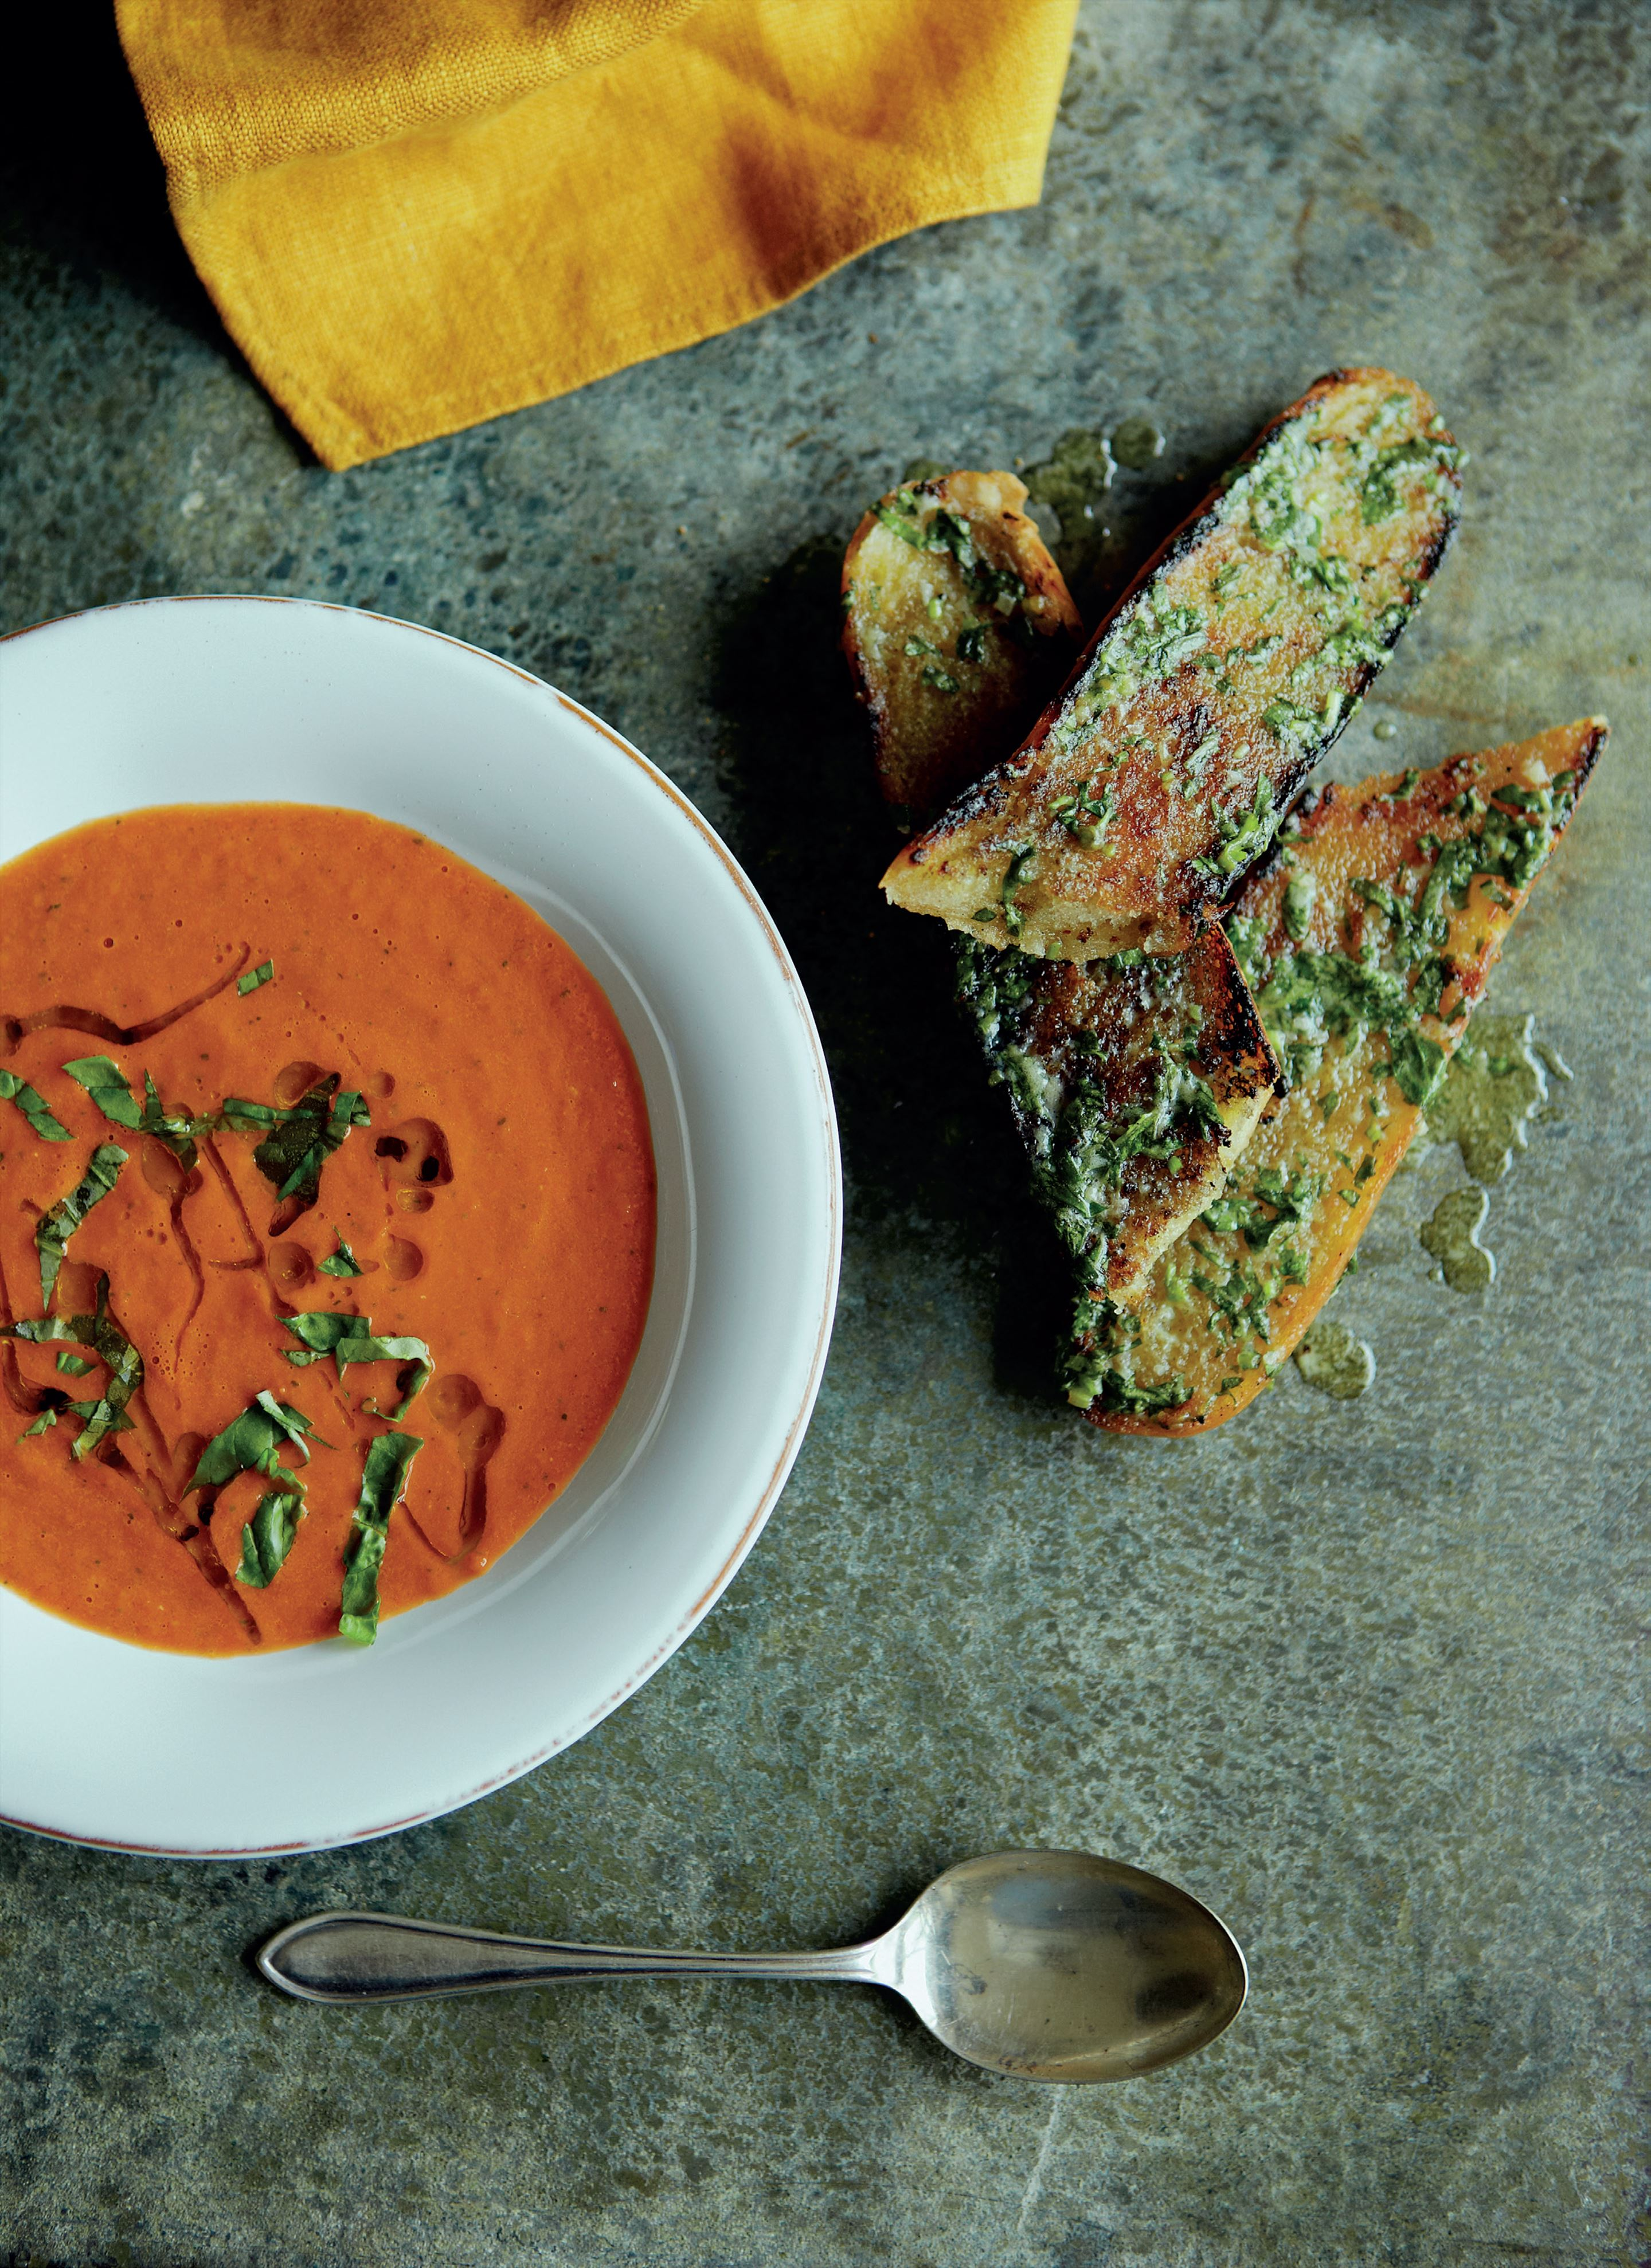 Quick tomato and basil soup with roasted garlic bread